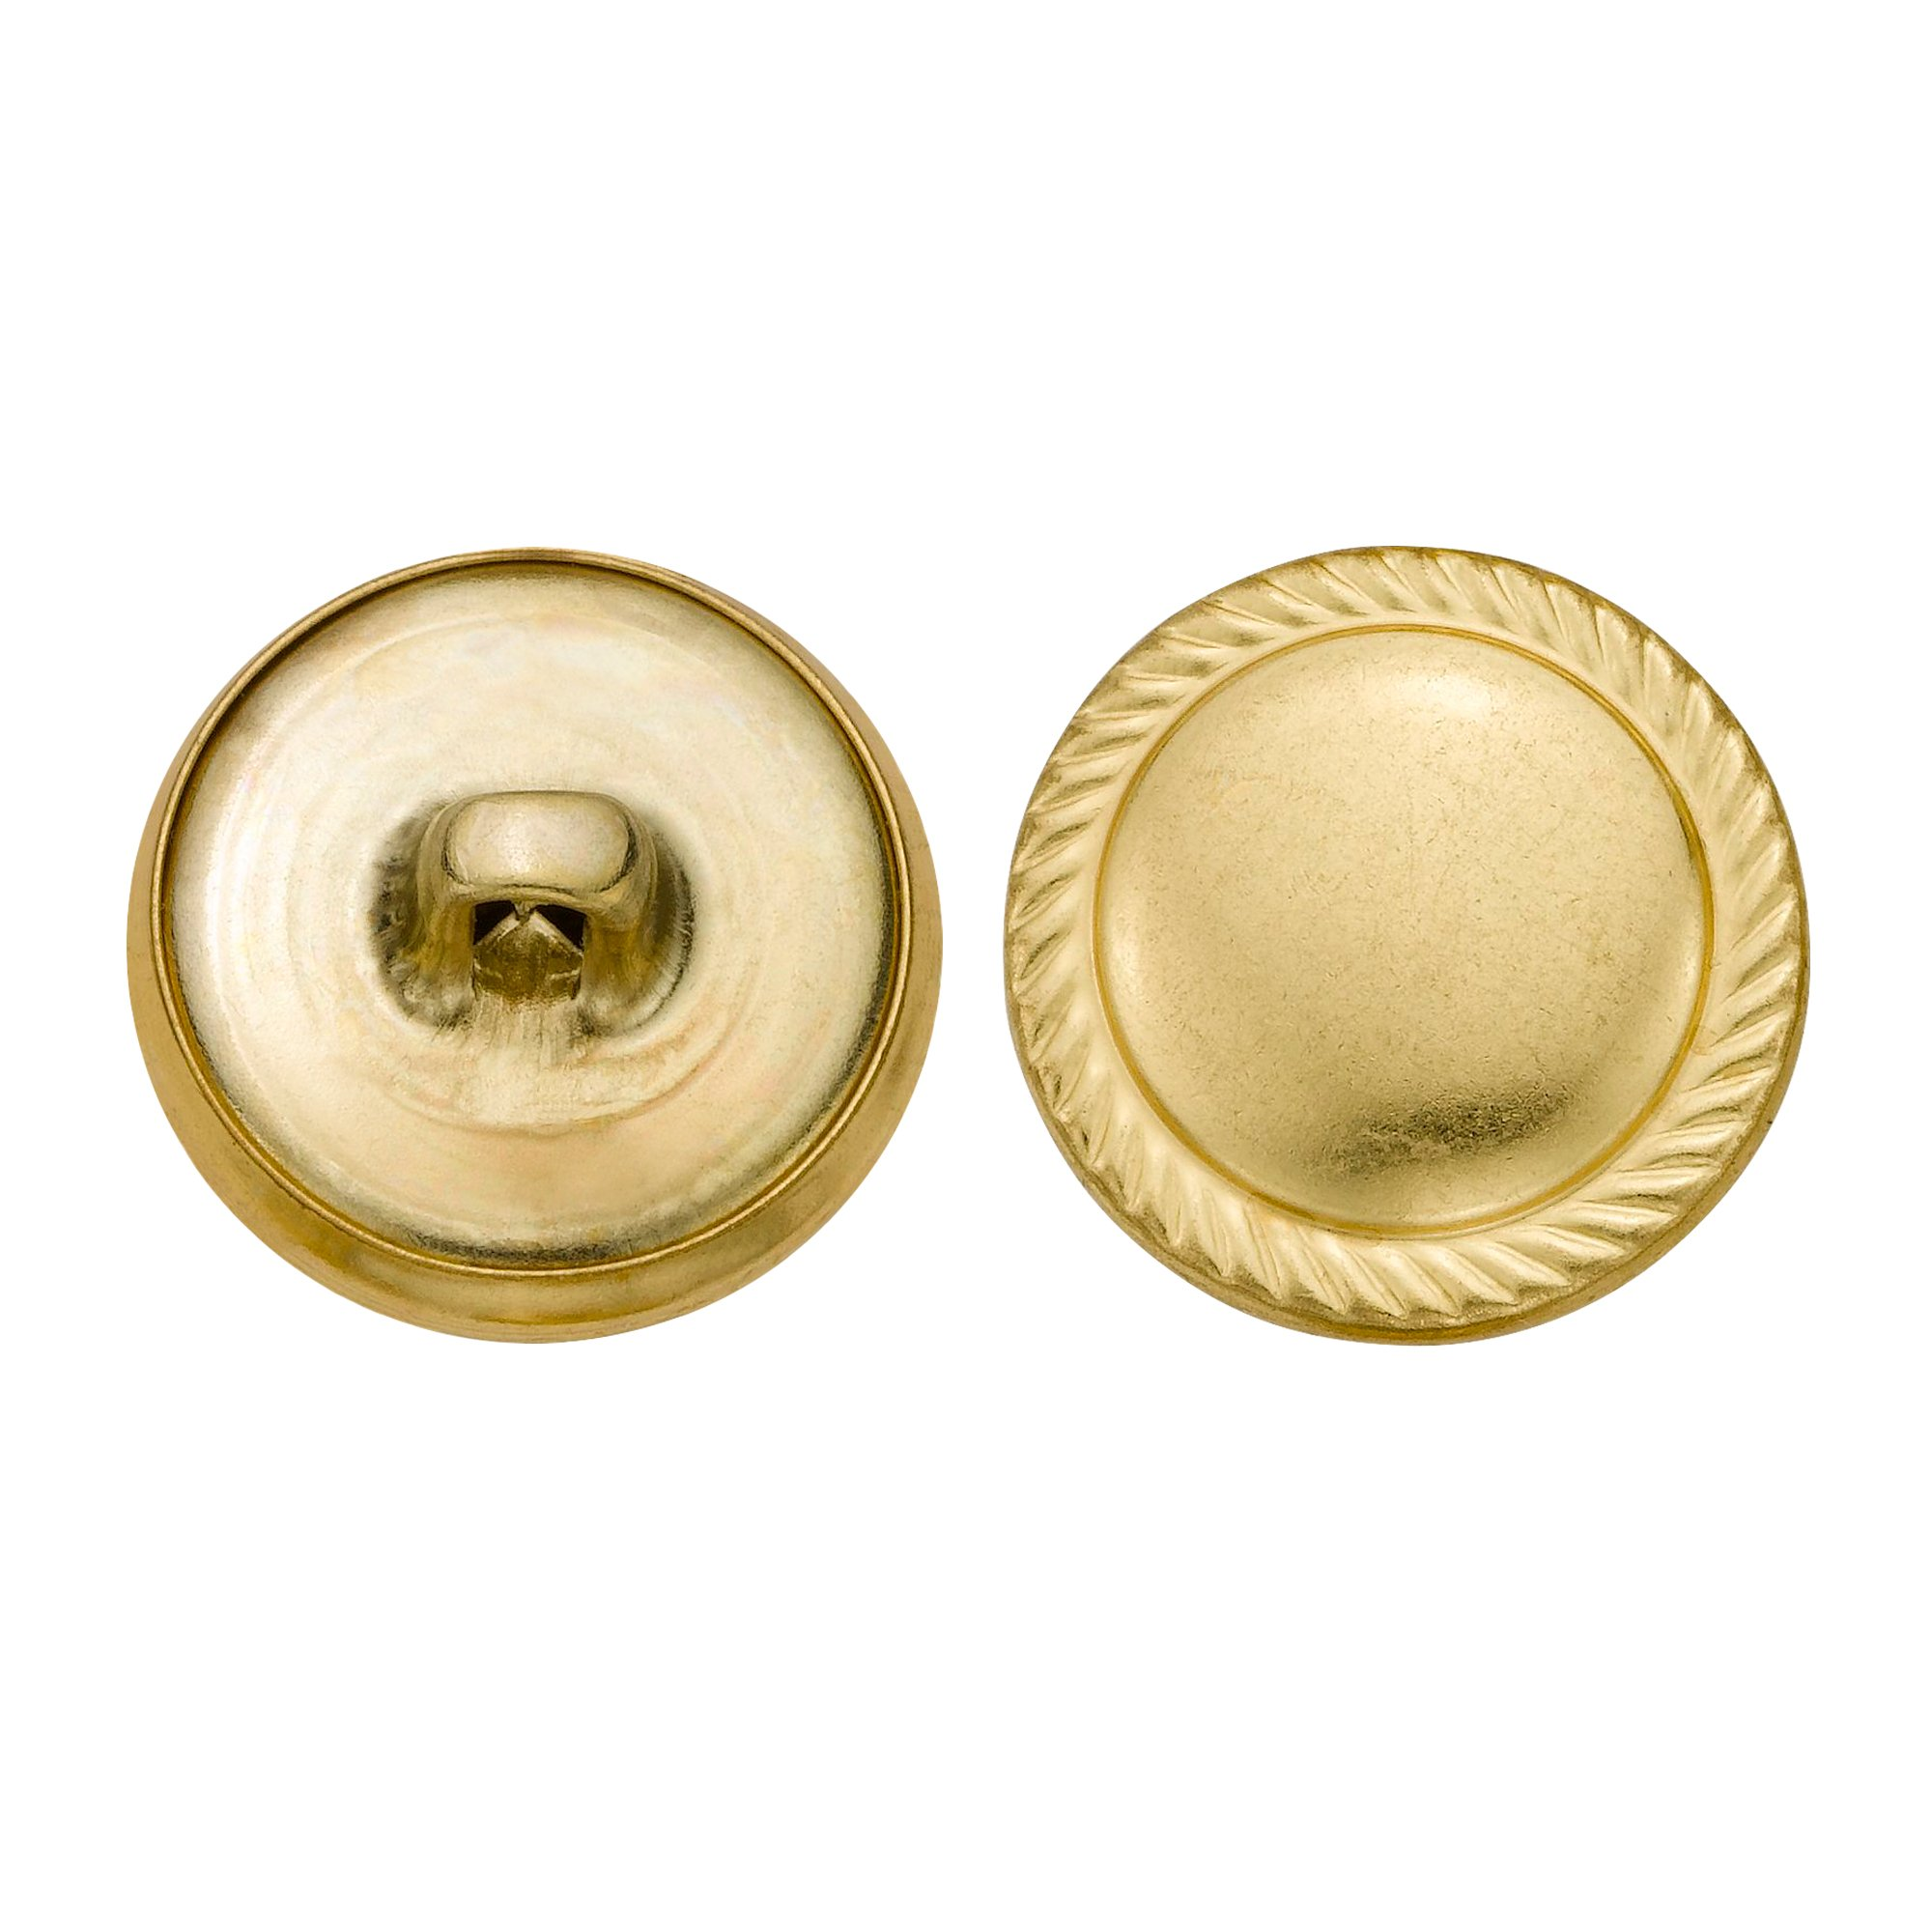 C&C Metal Products 5351 Rope Edge Dome Metal Button, Size 30 Ligne, Gold, 36-Pack